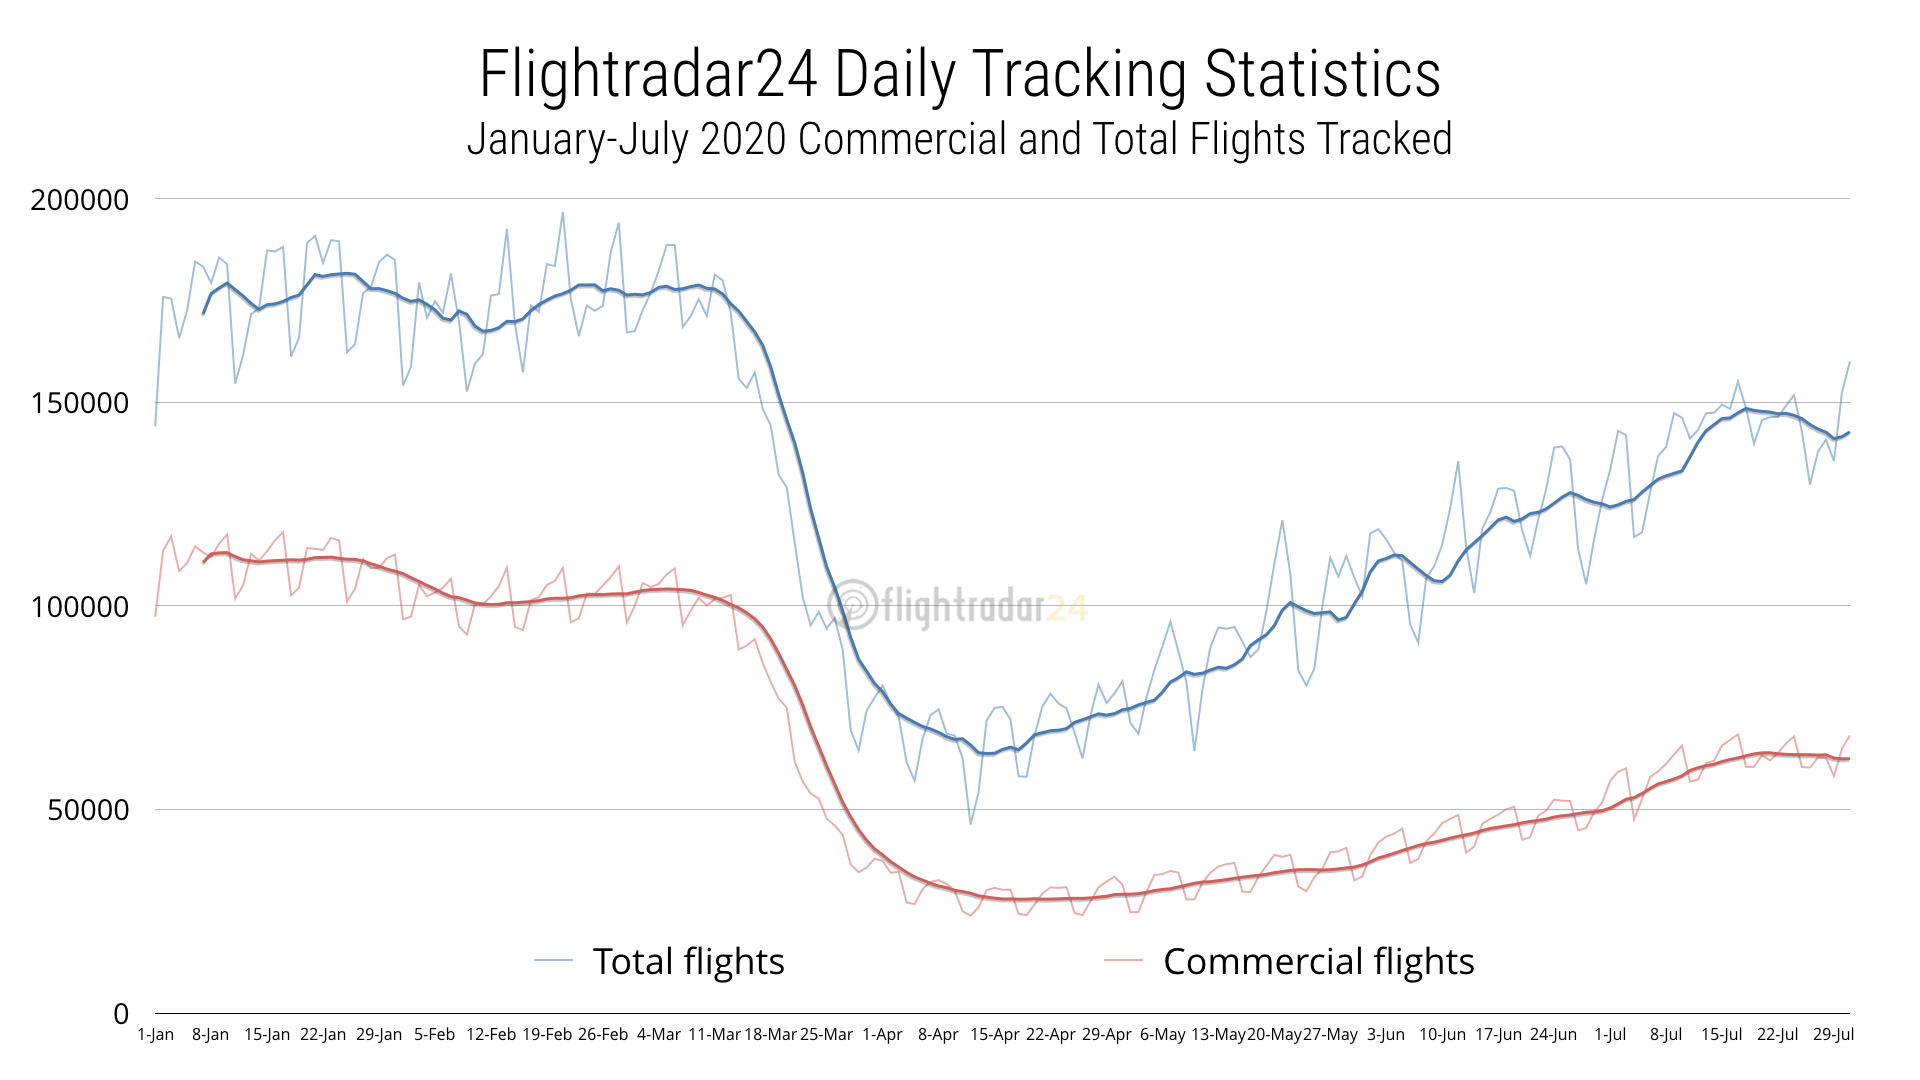 2020 Commercial and Total flights tracked